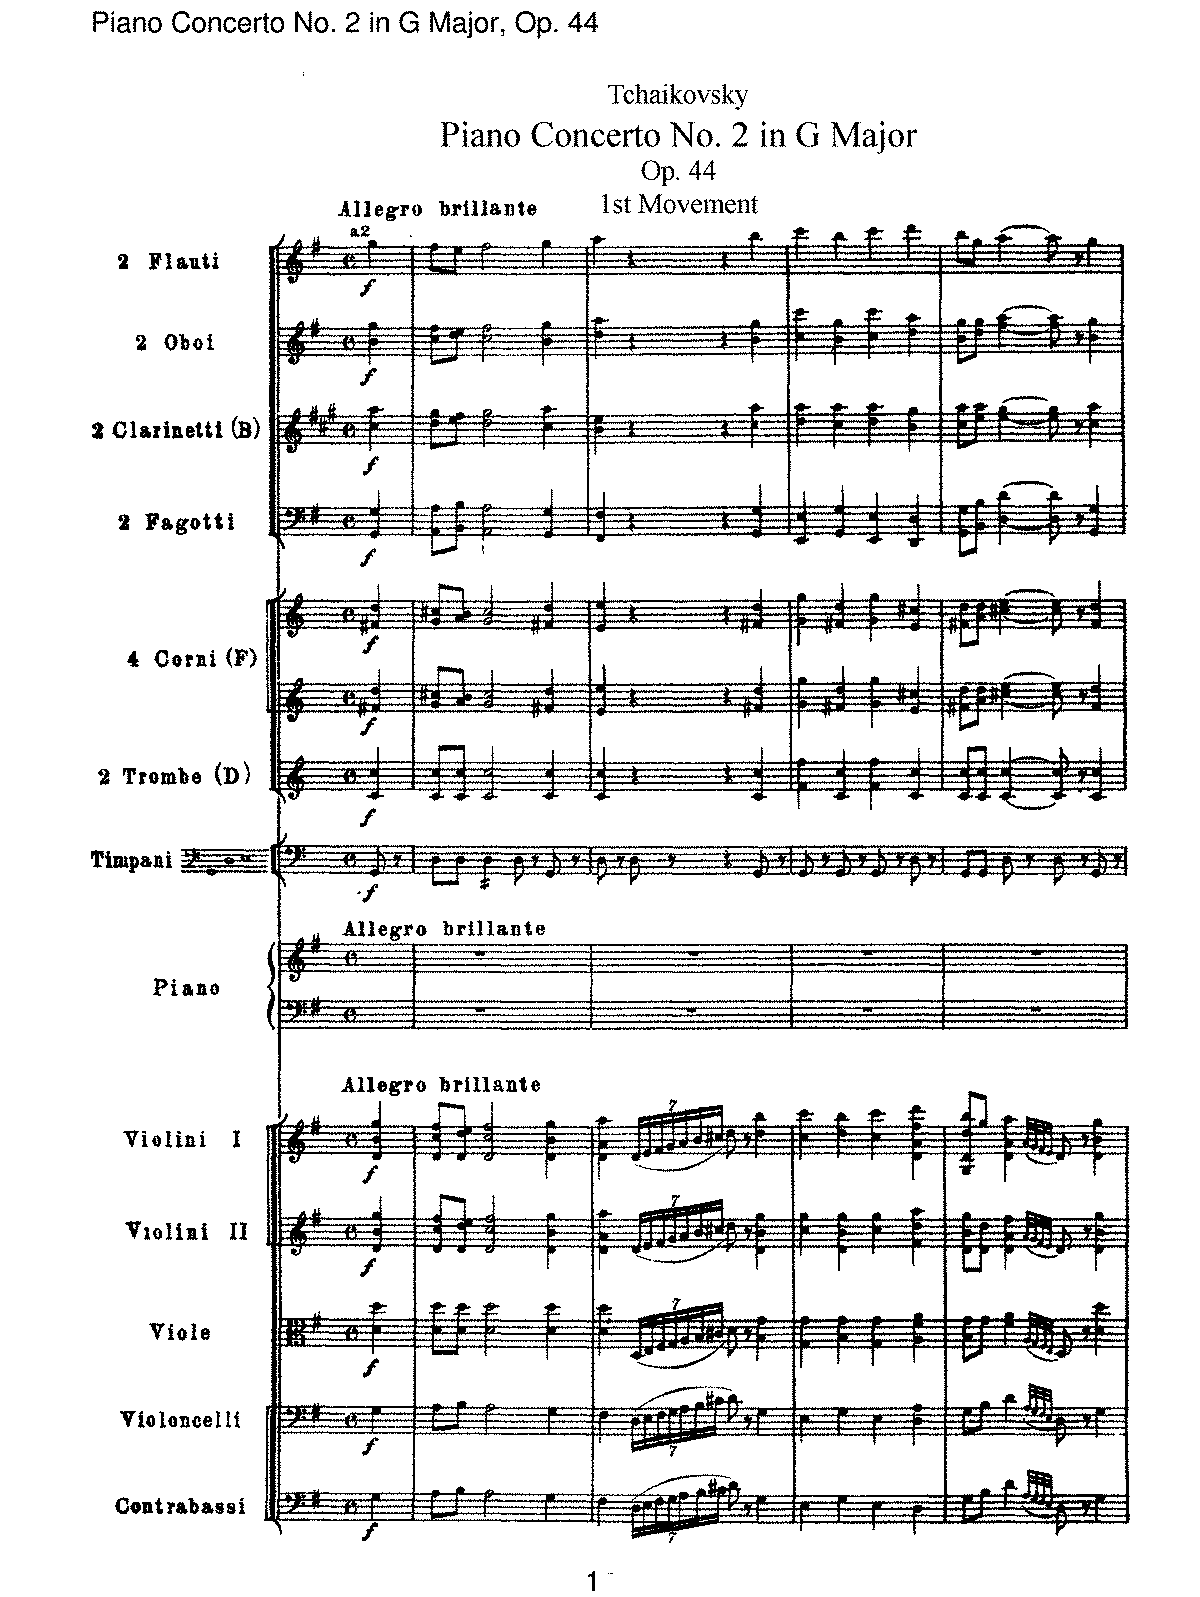 Tchaikovsky - Piano Concerto No. 2 in G Major, Op. 44-1.pdf